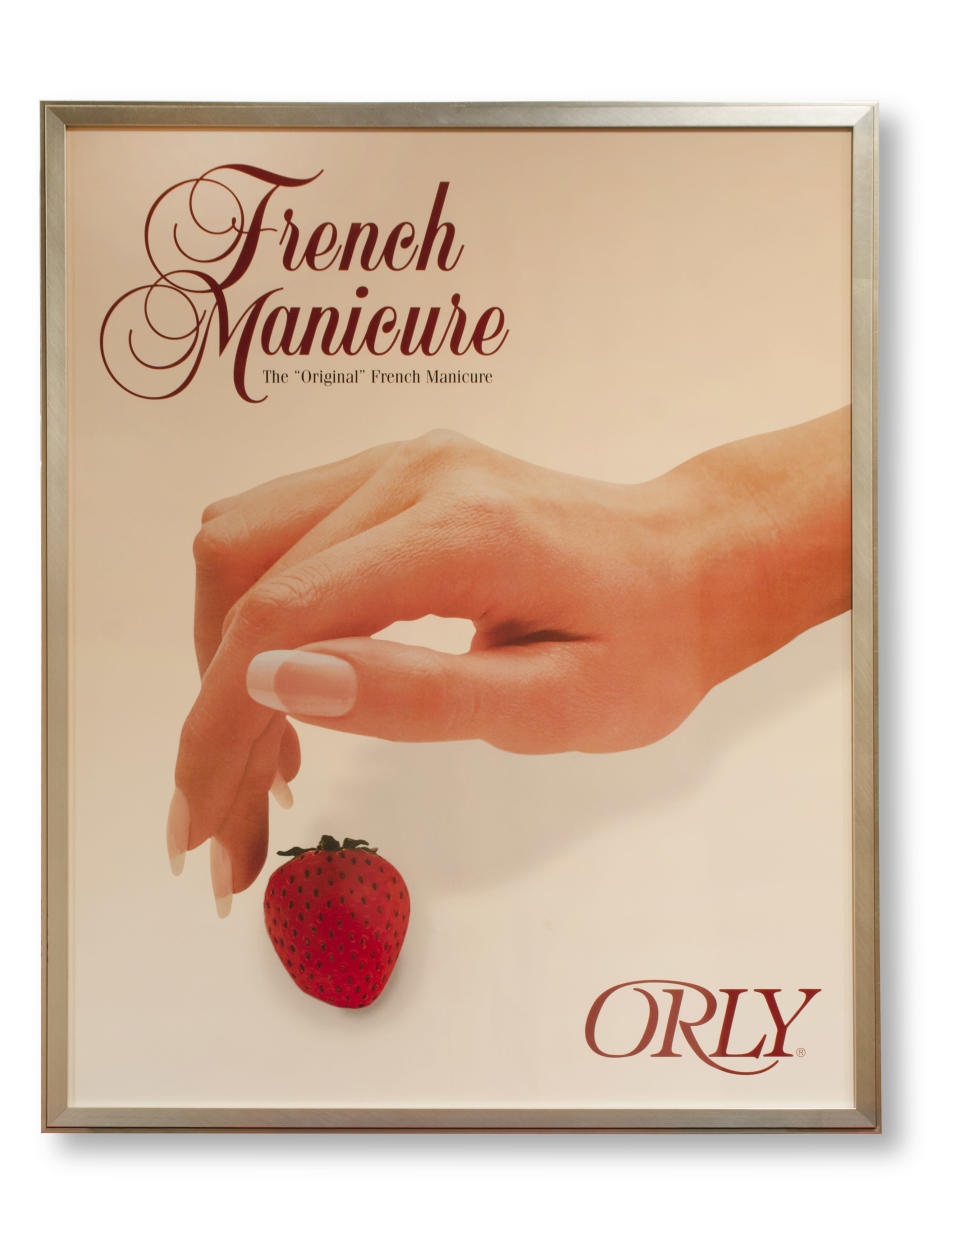 Vintage poster of the Original French Manicure by ORLY